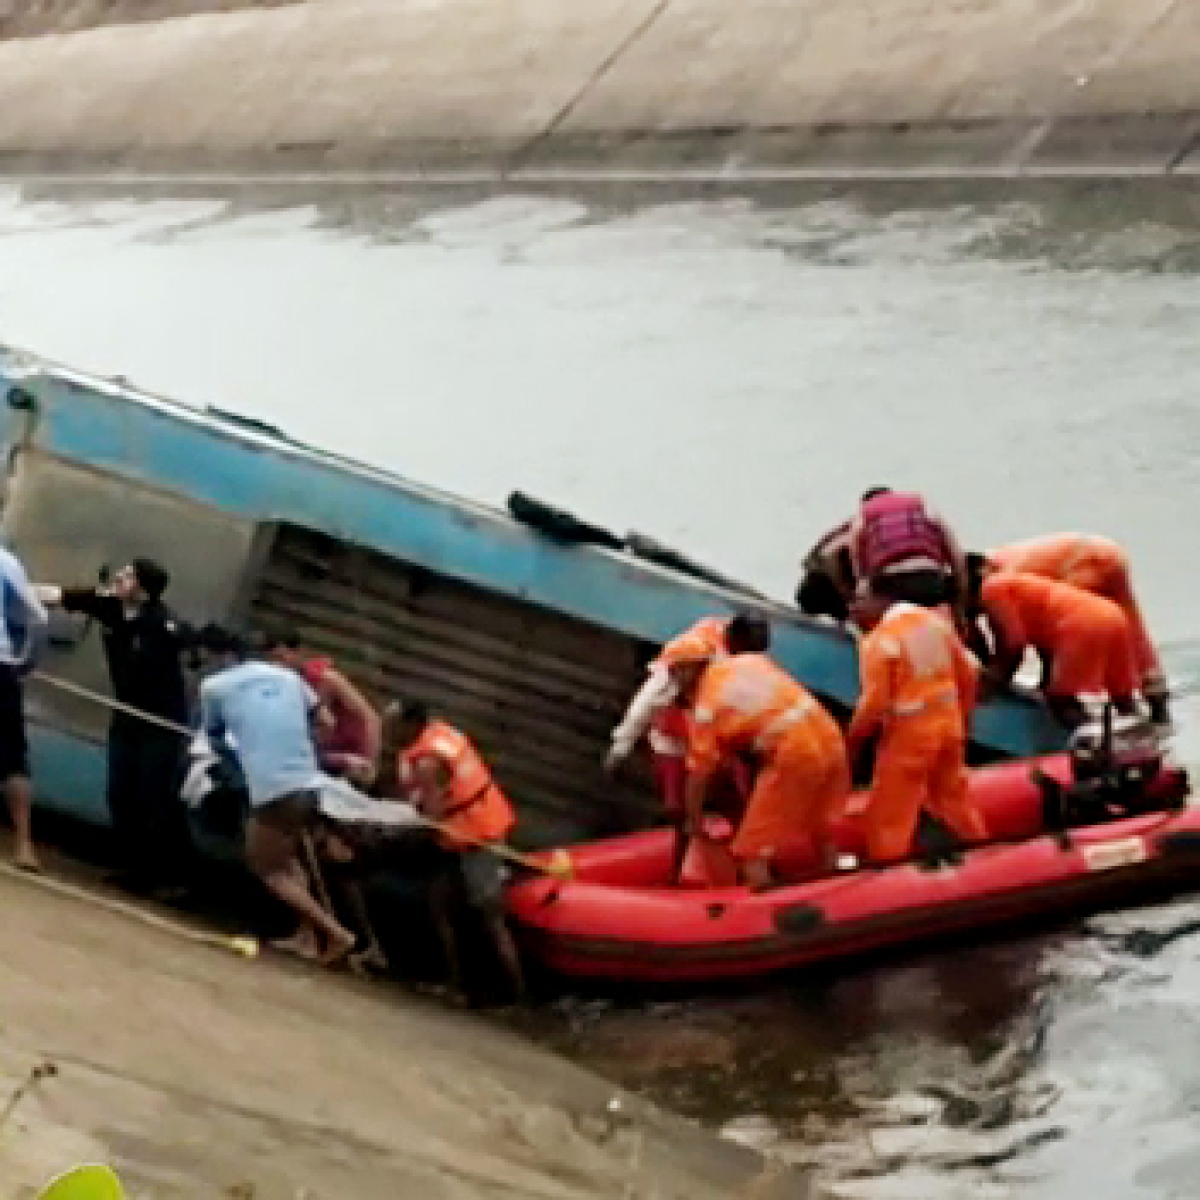 BUS TRAGEDY in Madhya Pradesh: Two more bodies taken out from Bansagar canal in Sidhi district